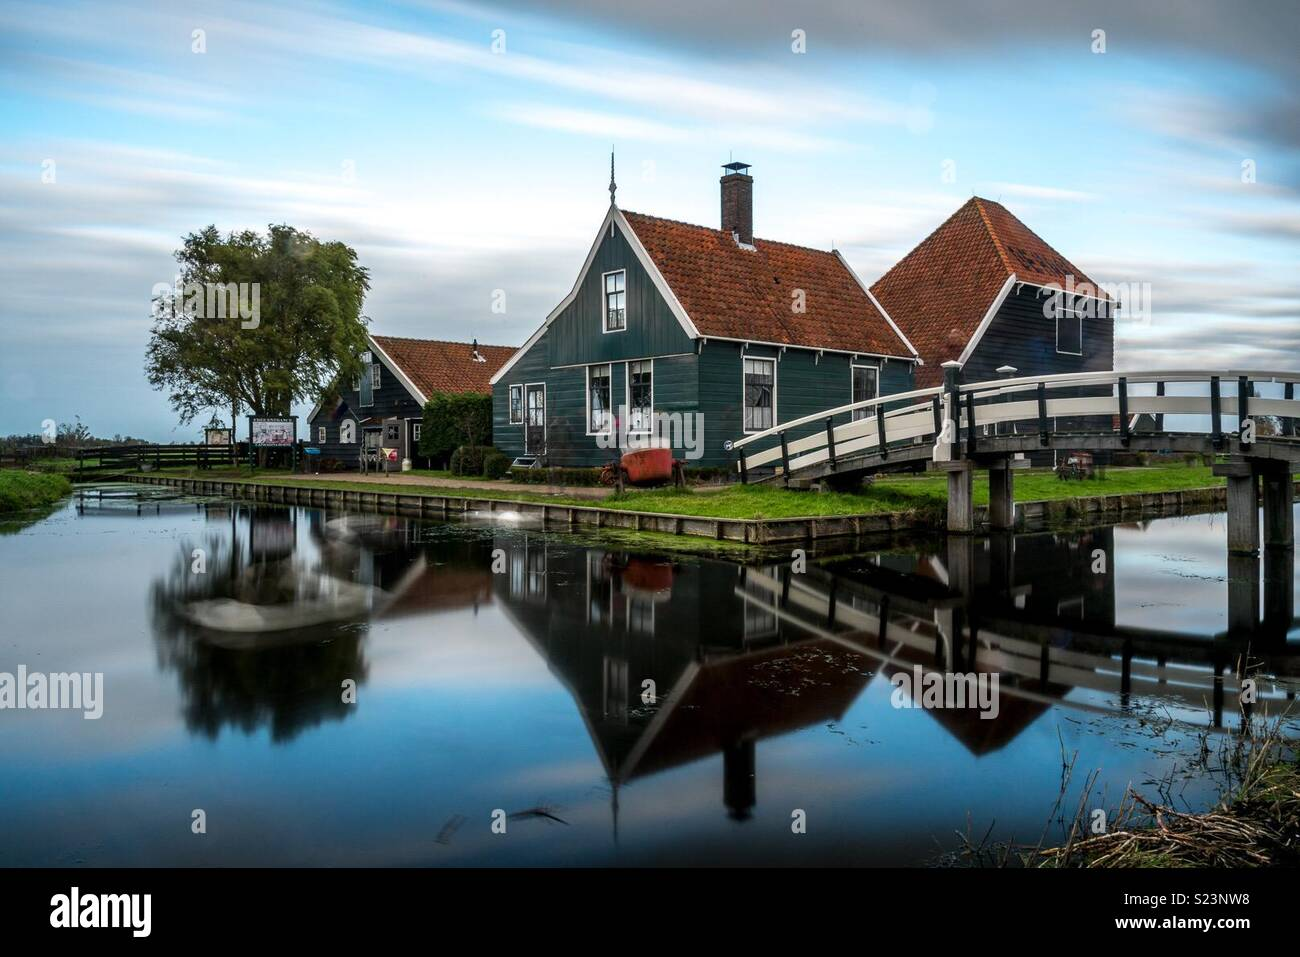 Boutique fromage, Zaanse Schans, Pays-Bas Photo Stock